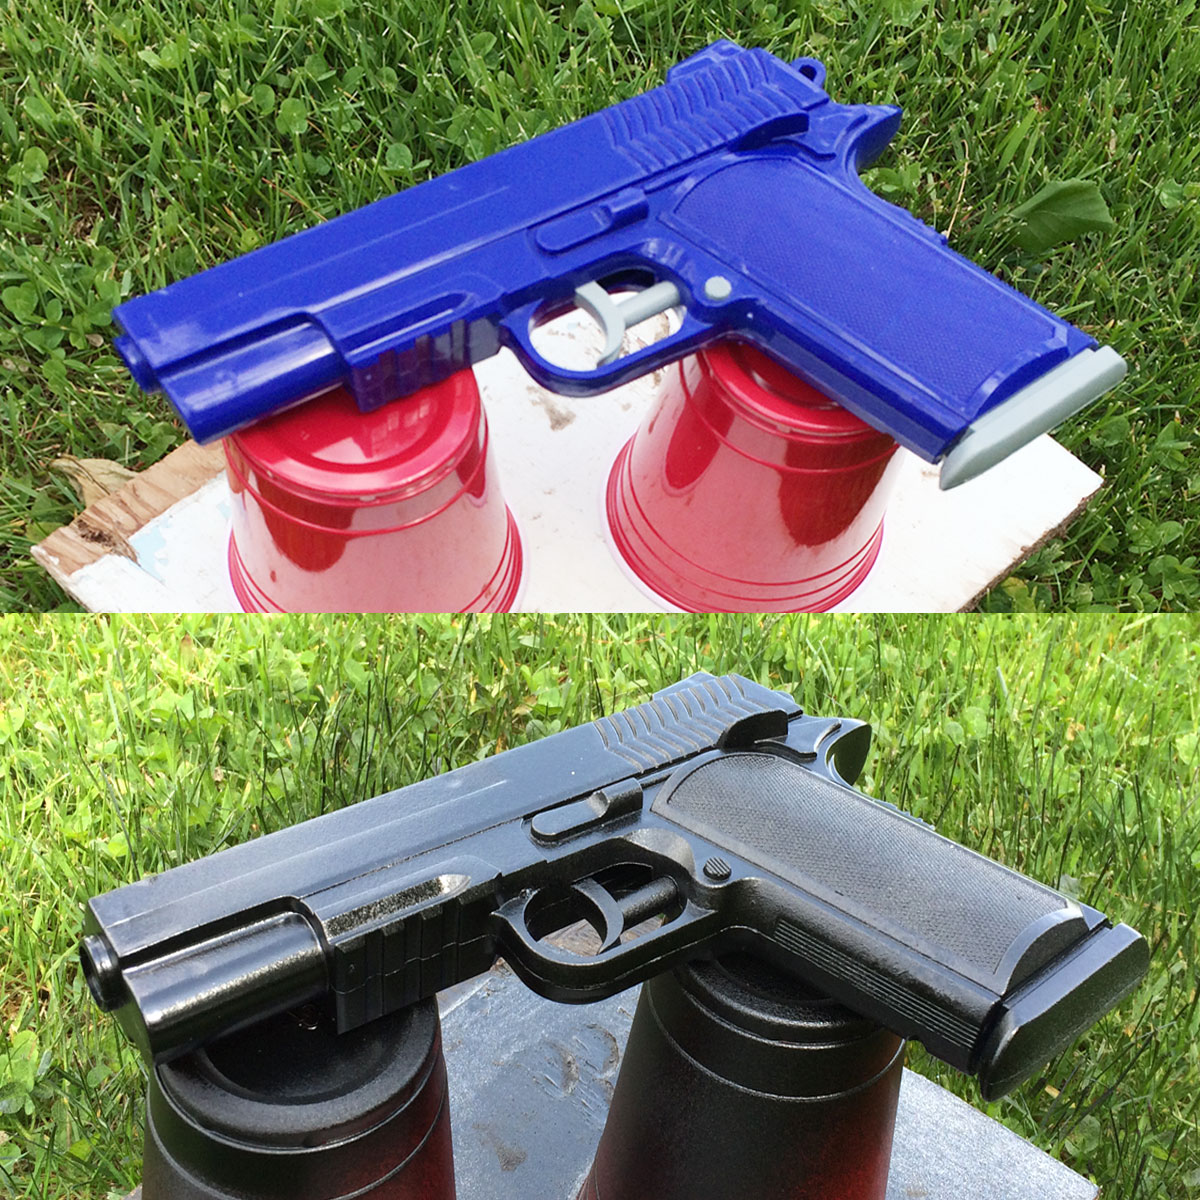 Testing black spray paint on a toy gun for a future shoot